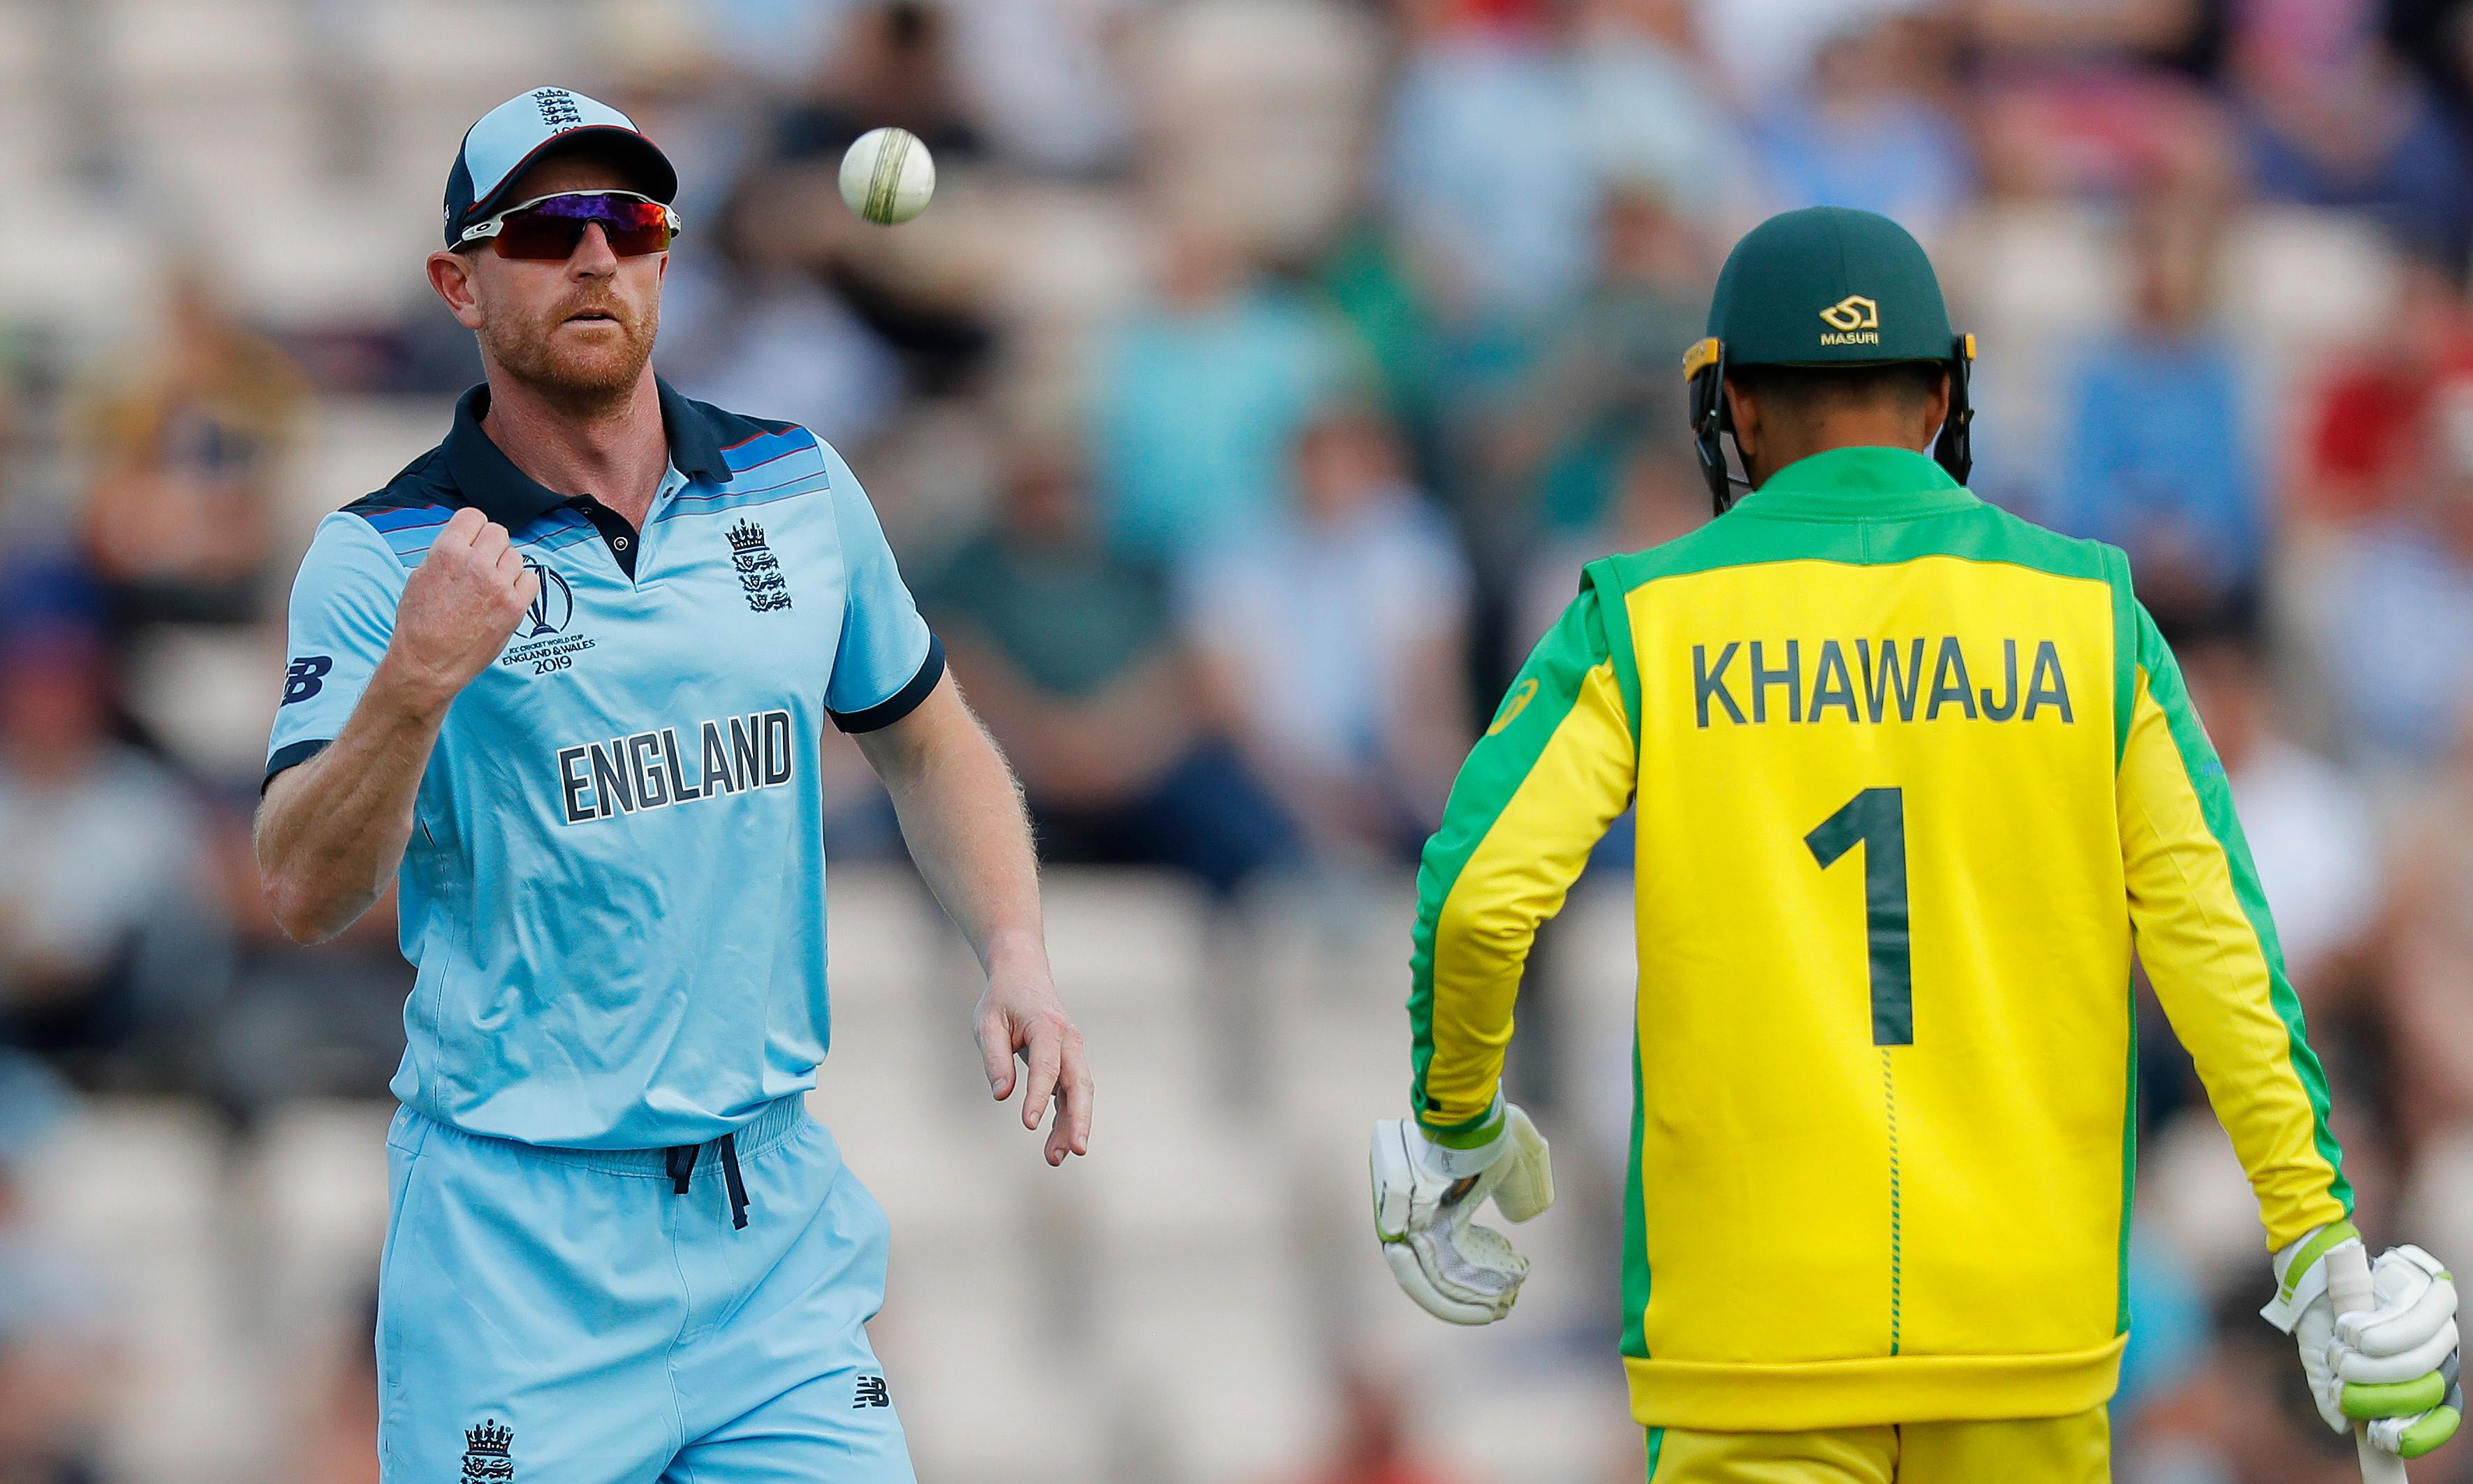 England have nothing to gain and plenty to lose in final warm-ups